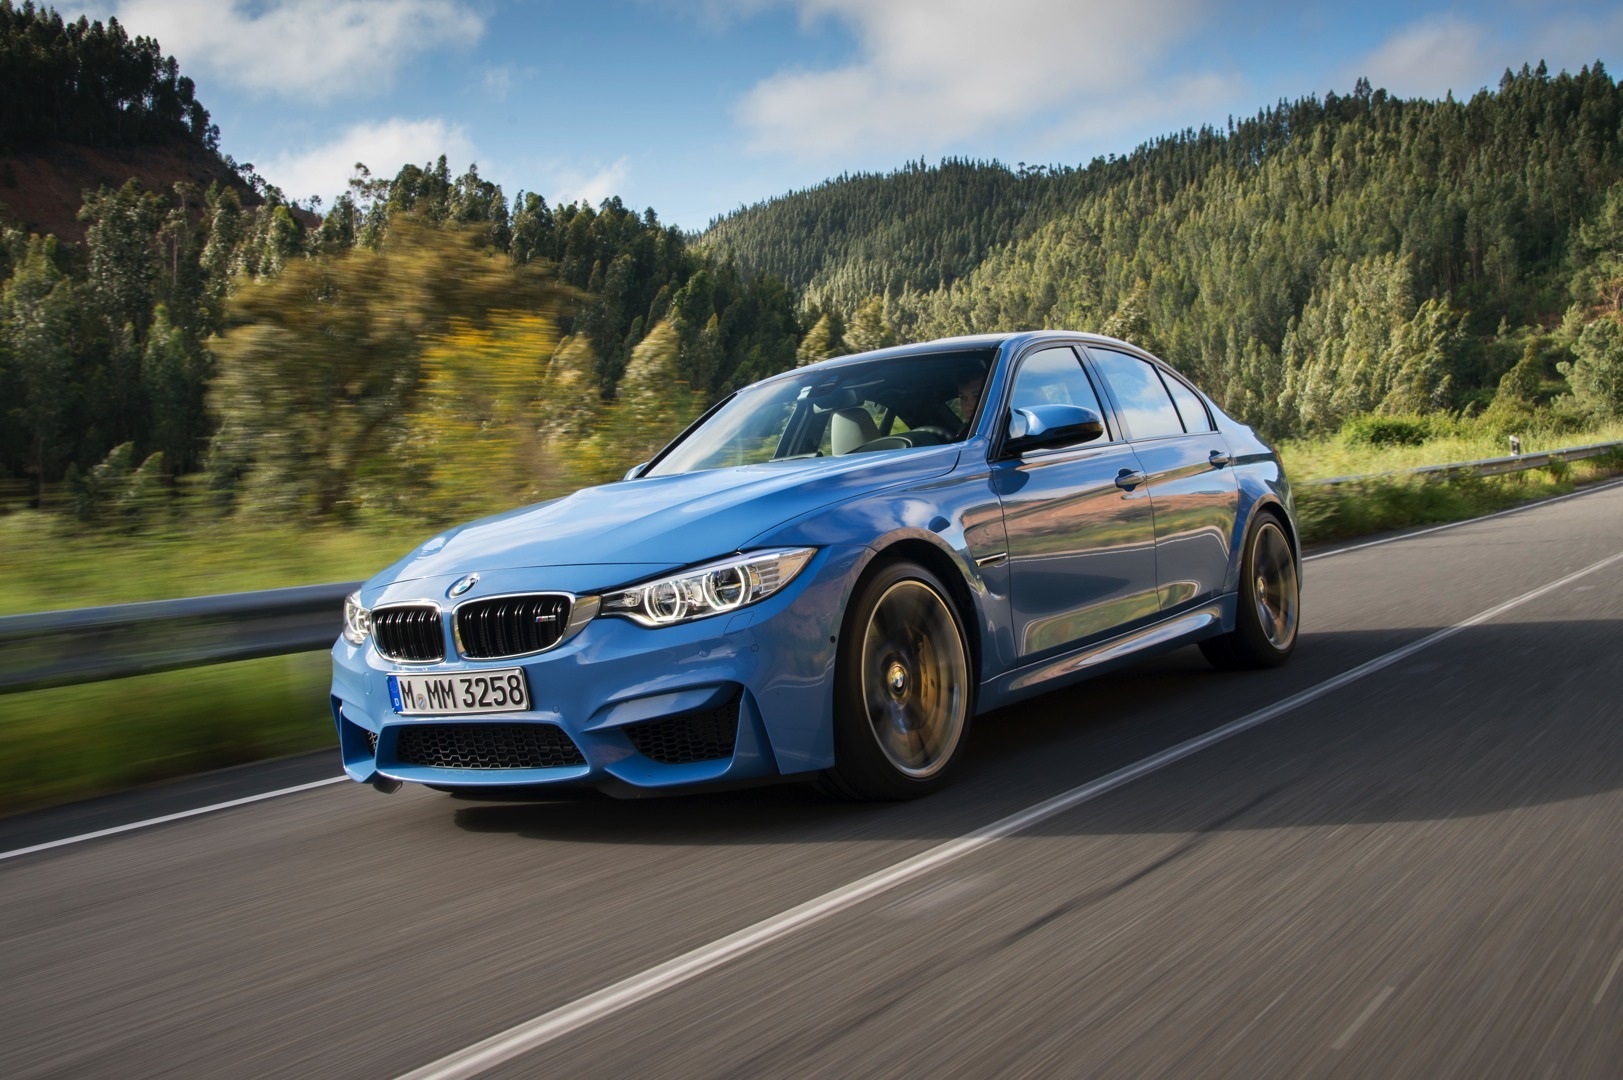 bmw f80 m3 to get small facelift with f30 3 series lci autoevolution. Black Bedroom Furniture Sets. Home Design Ideas